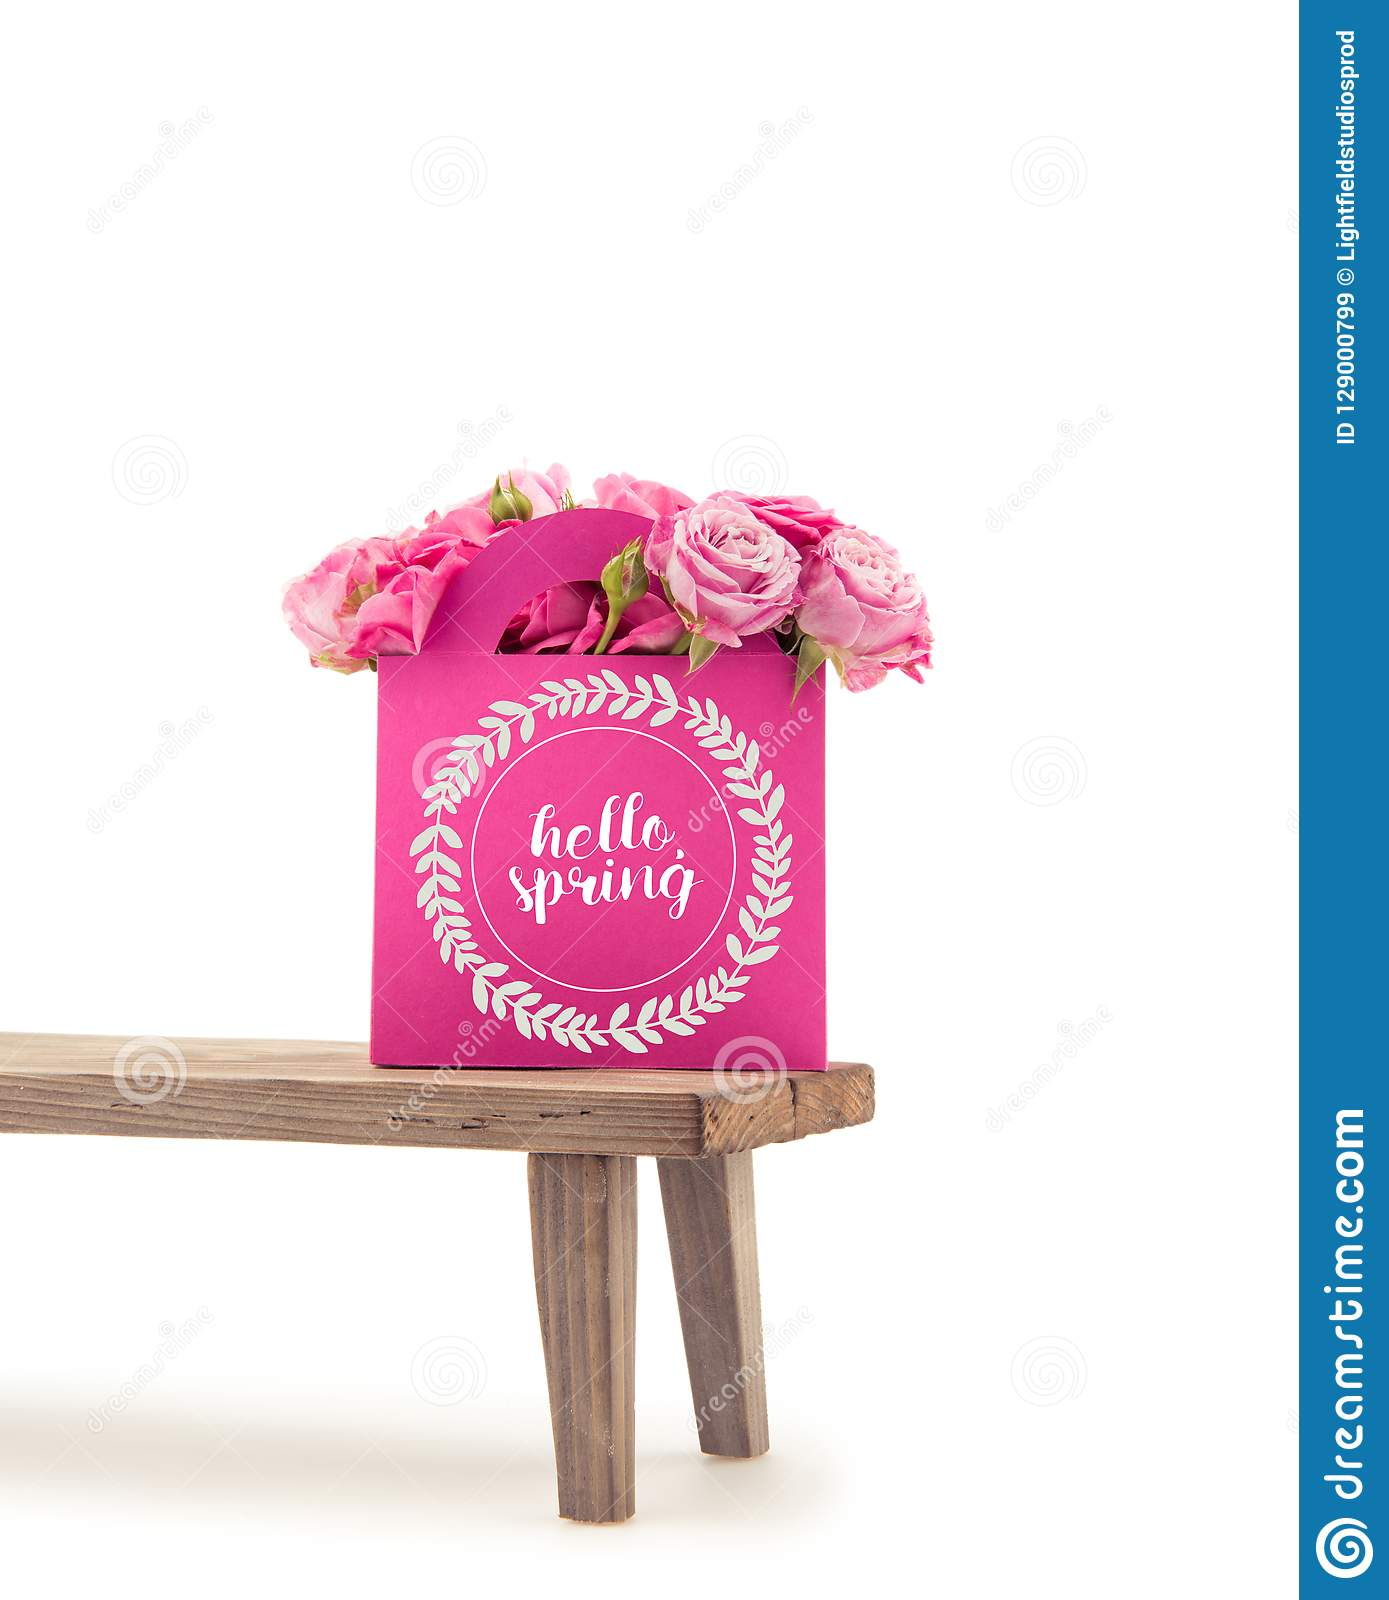 Close-up view of tender blooming rose flowers in pink paper bag with HELLO SPRING lettering on wooden bench